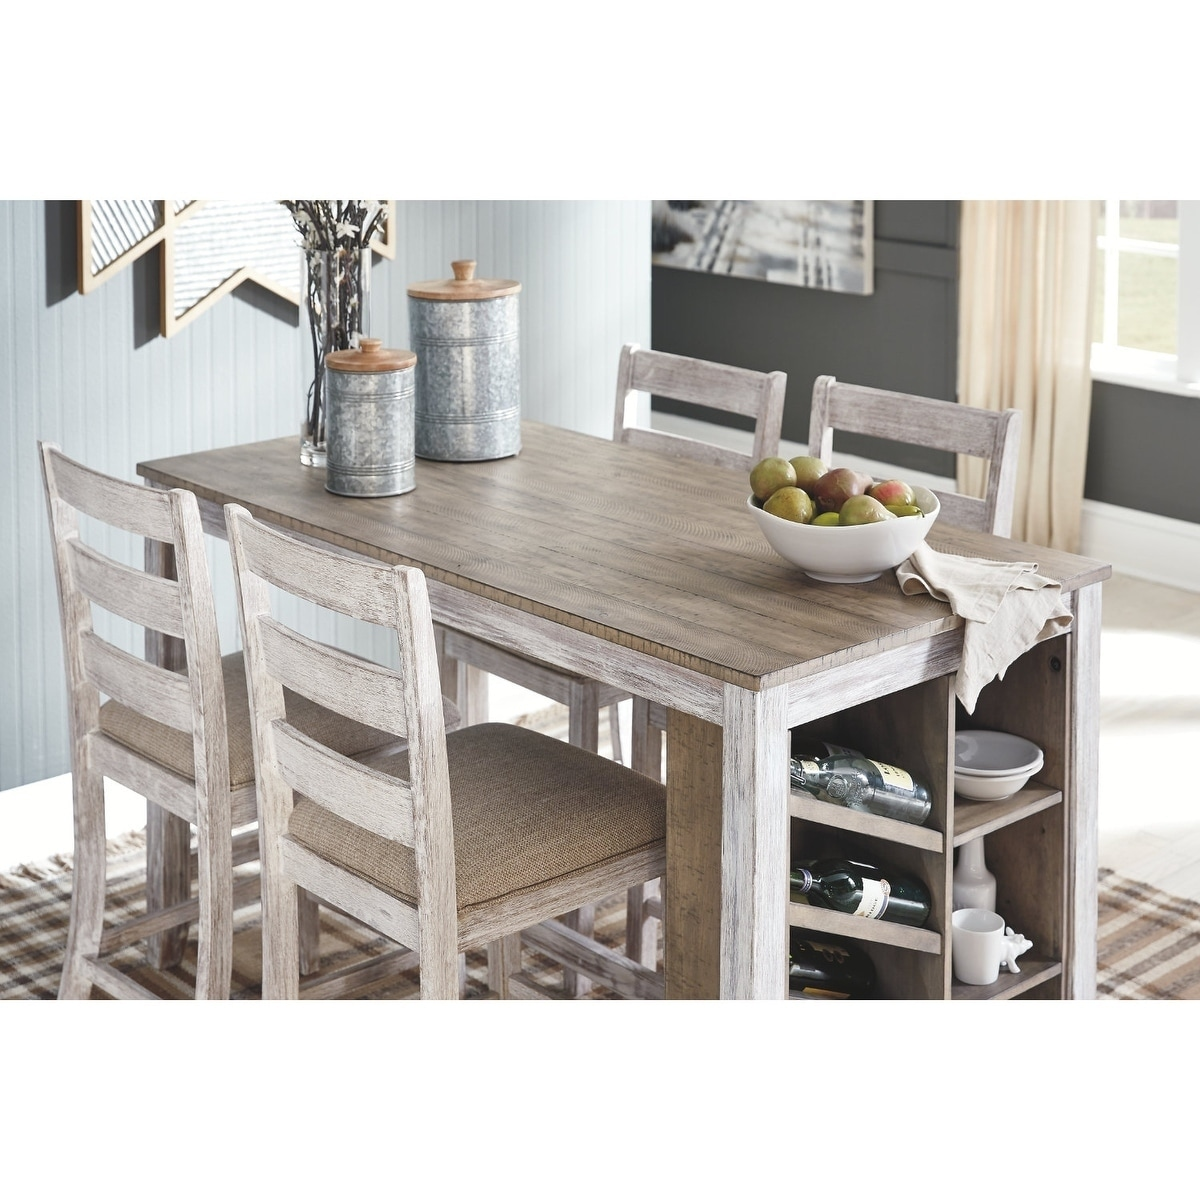 The Gray Barn Dunbeg Bay White/Light Brown Counter-height Dining Table with  Storage